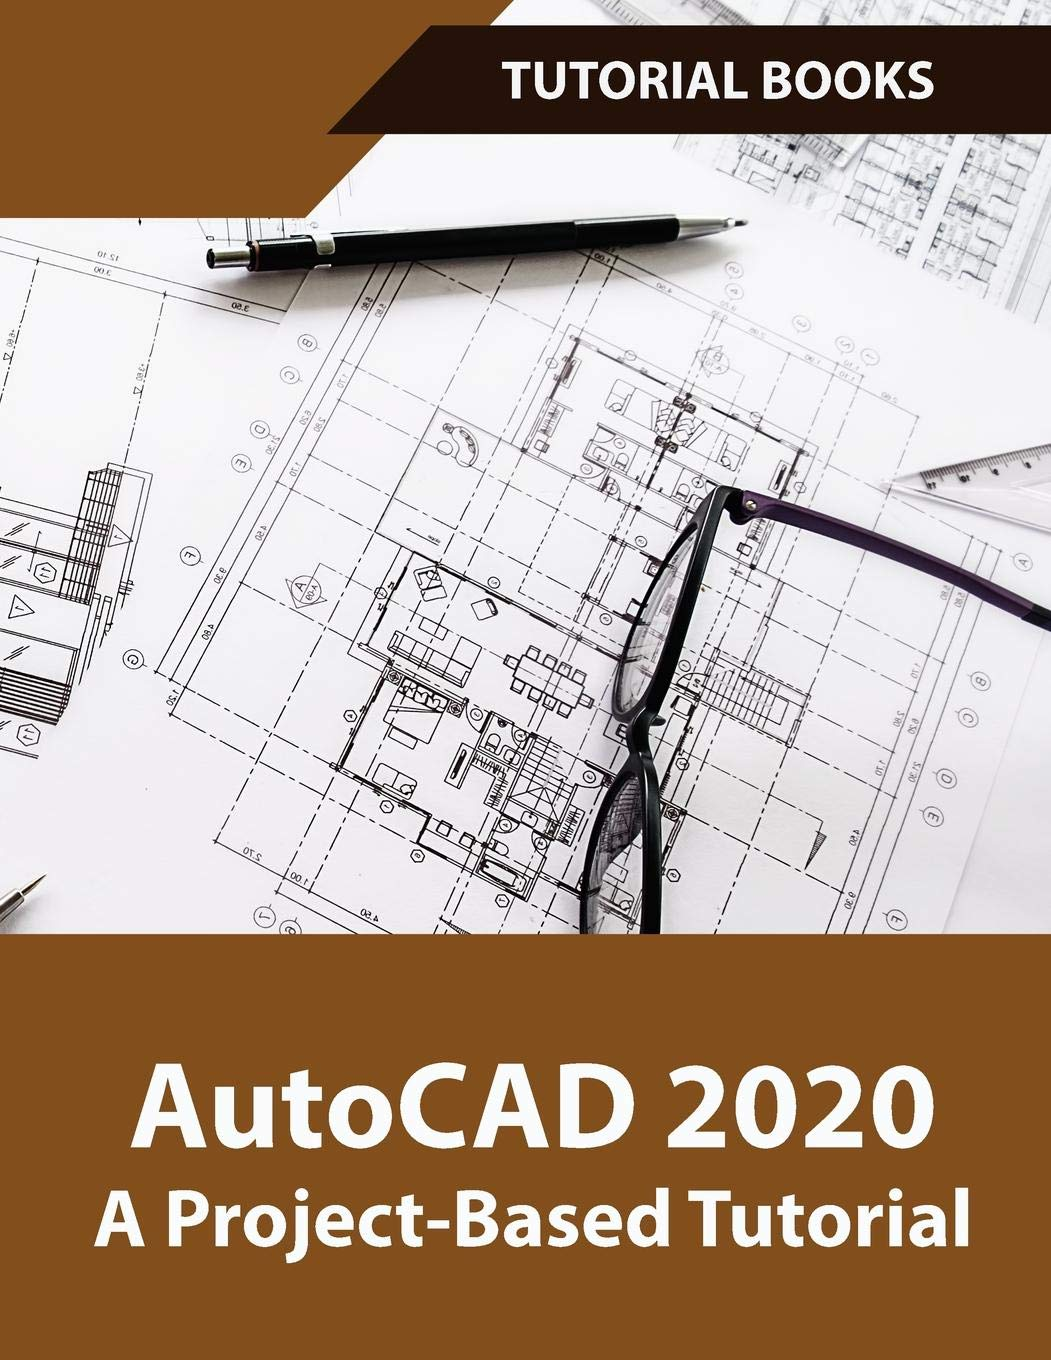 AutoCAD 2020 A Project-Based Tutorial: Floor Plans ... on cnc home design, solidworks home design, residential design, adobe home design, northwest home design, blender home design, office home design, sketchup home design, kerala home design, design home design, chief architect software home design, turbocad home design, cad design, 3ds max home design, autodesk home design, word home design, inventor home design, dxf home design, google sketchup house design, punch software home design,